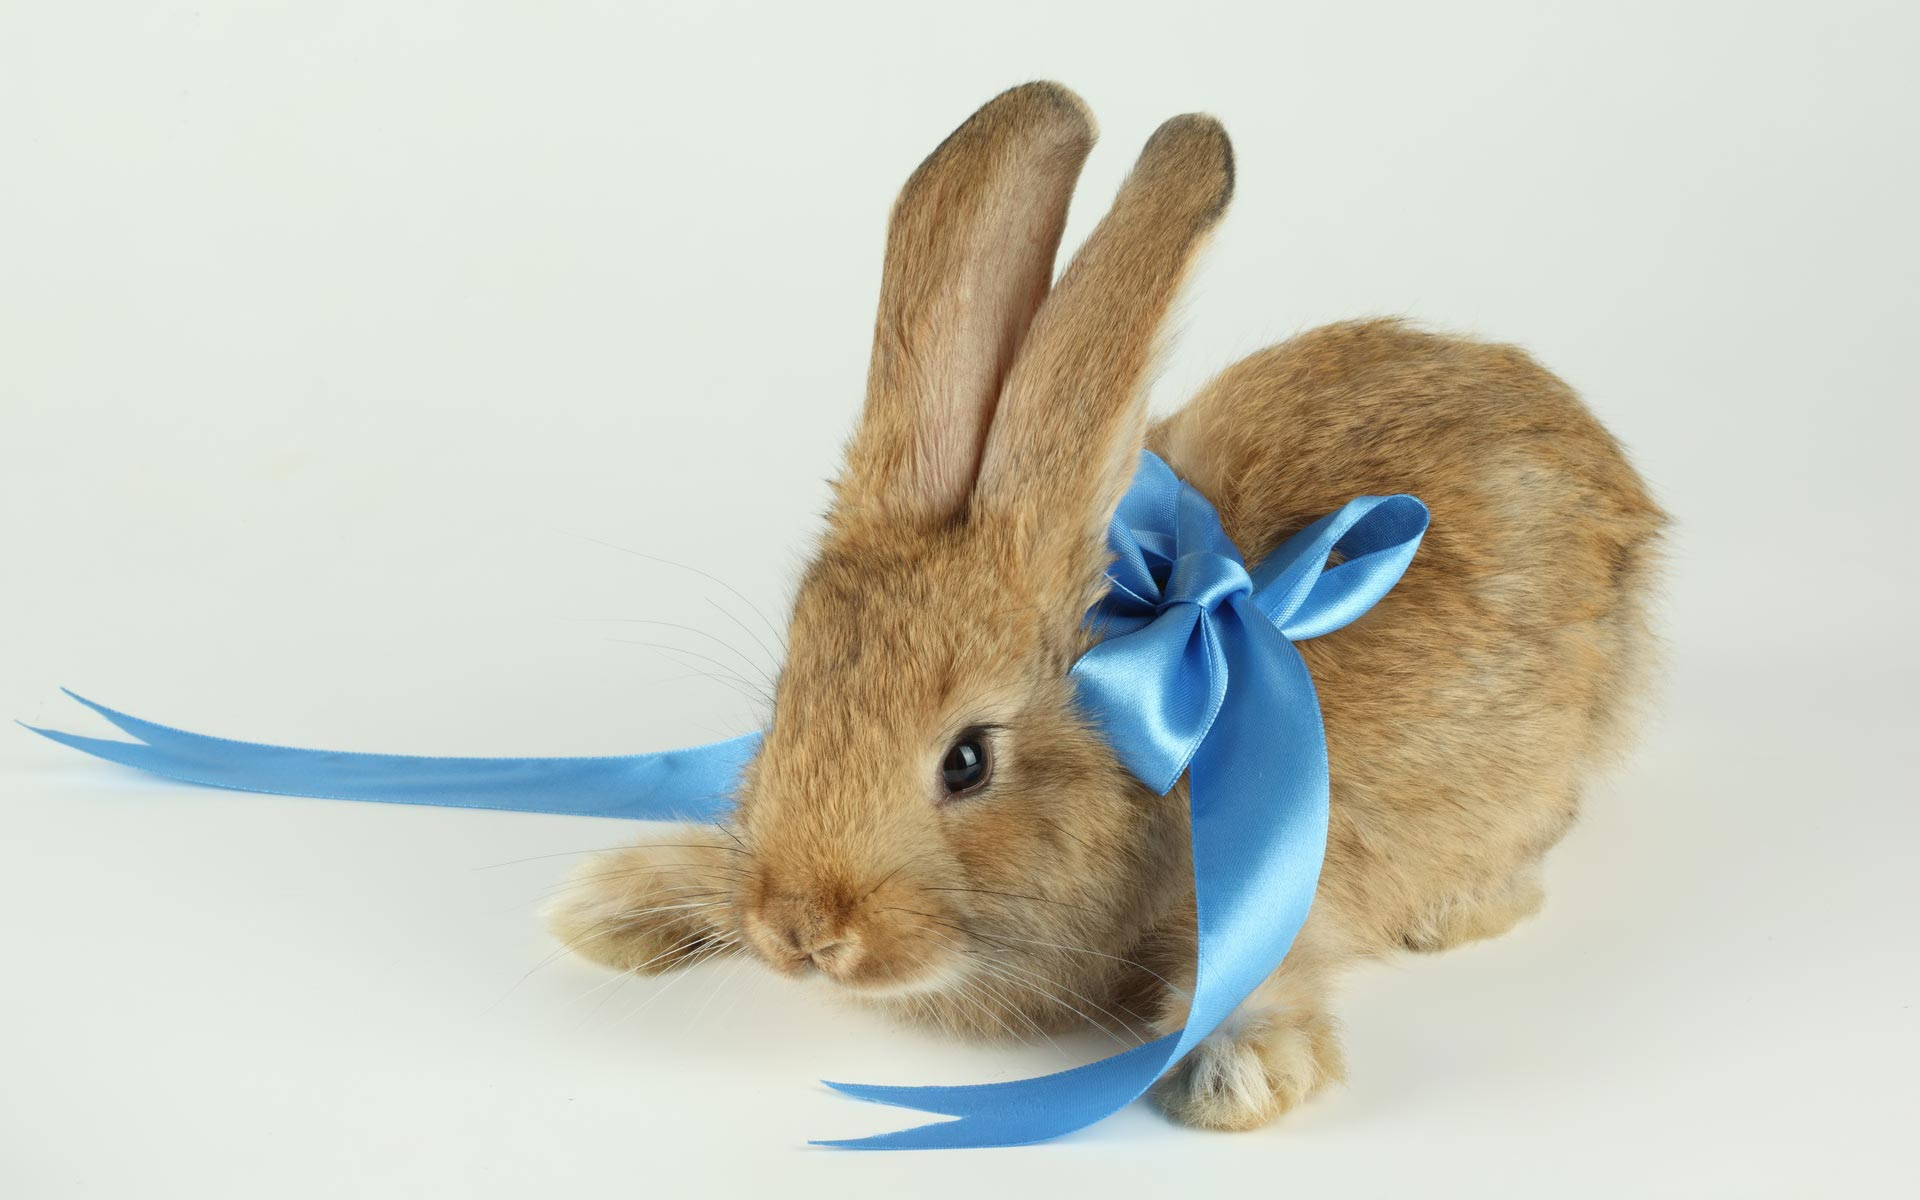 Bunny Wallpapers High Quality | Download Free